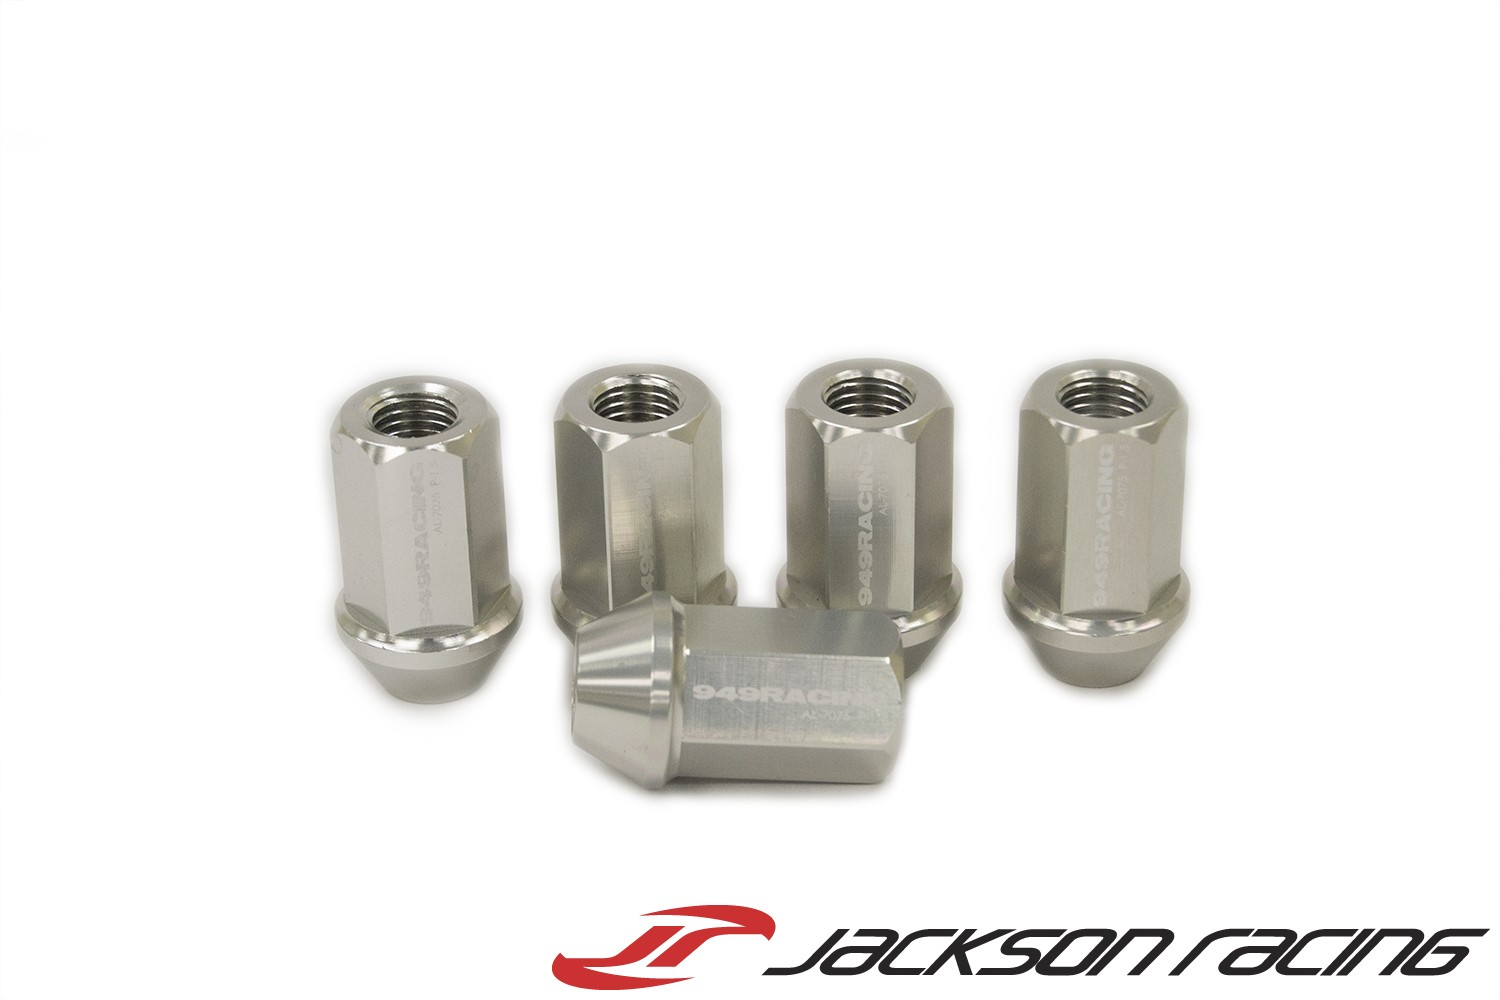 949 Racing Forged Lug Nuts - M12x1.50 - Silver - Set of 20